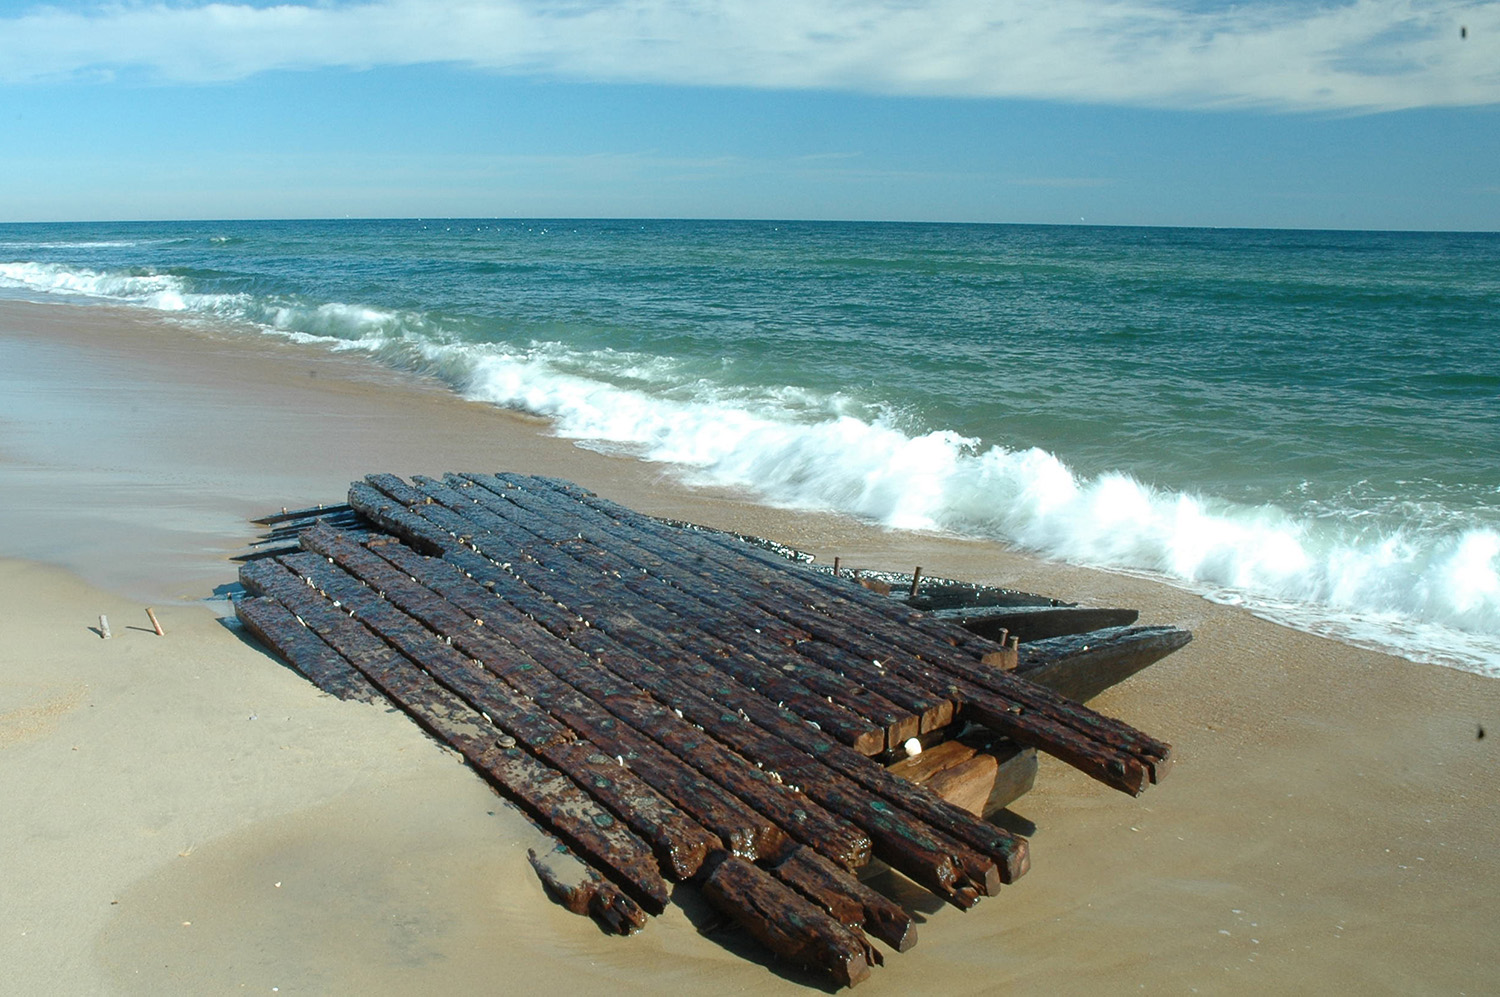 Taken after a nor'easter uncovered a long-buried shipwreck on the Outer Banks.